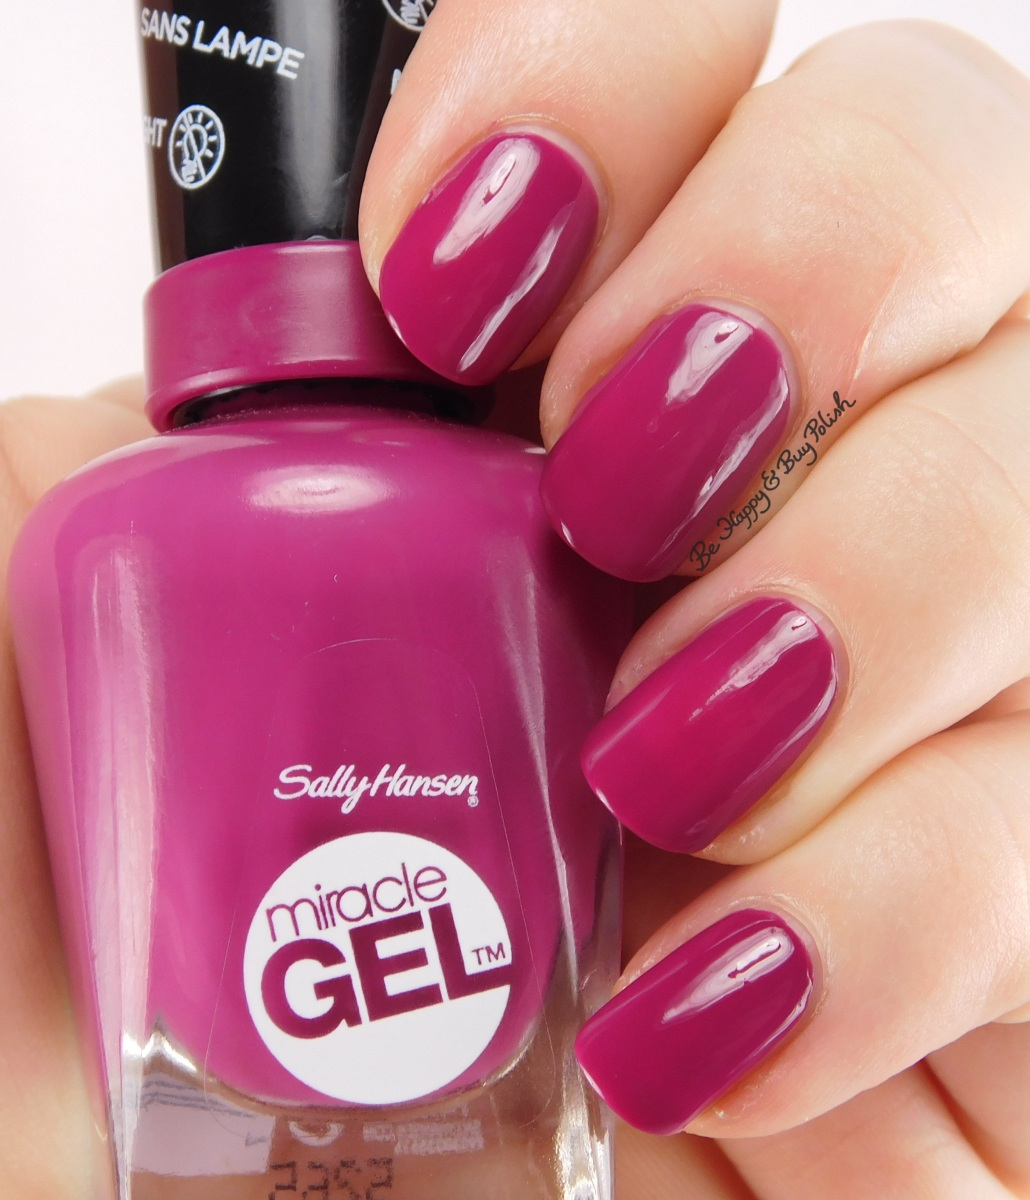 Sally Hansen Miracle Gel Motley Hue [Glam Rock collection] swatch + review